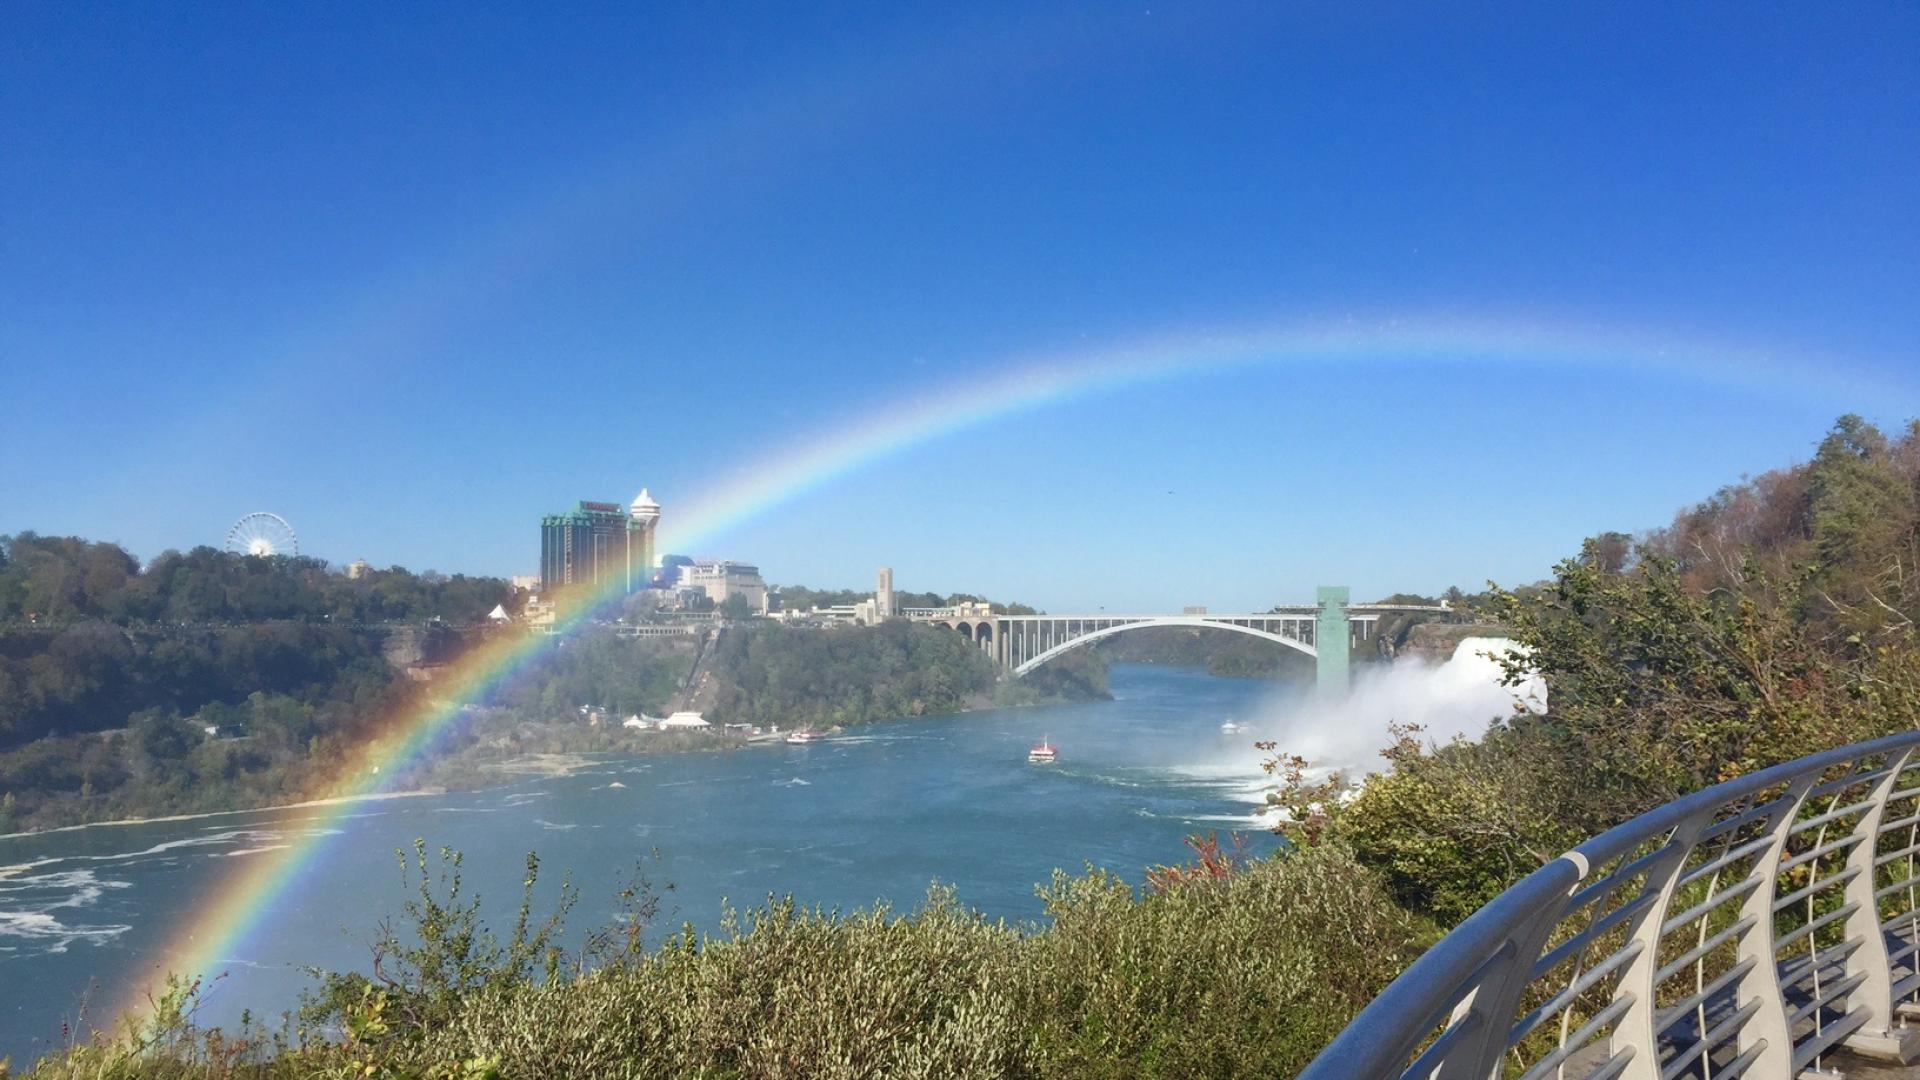 A rainbow shines over the Niagara River.